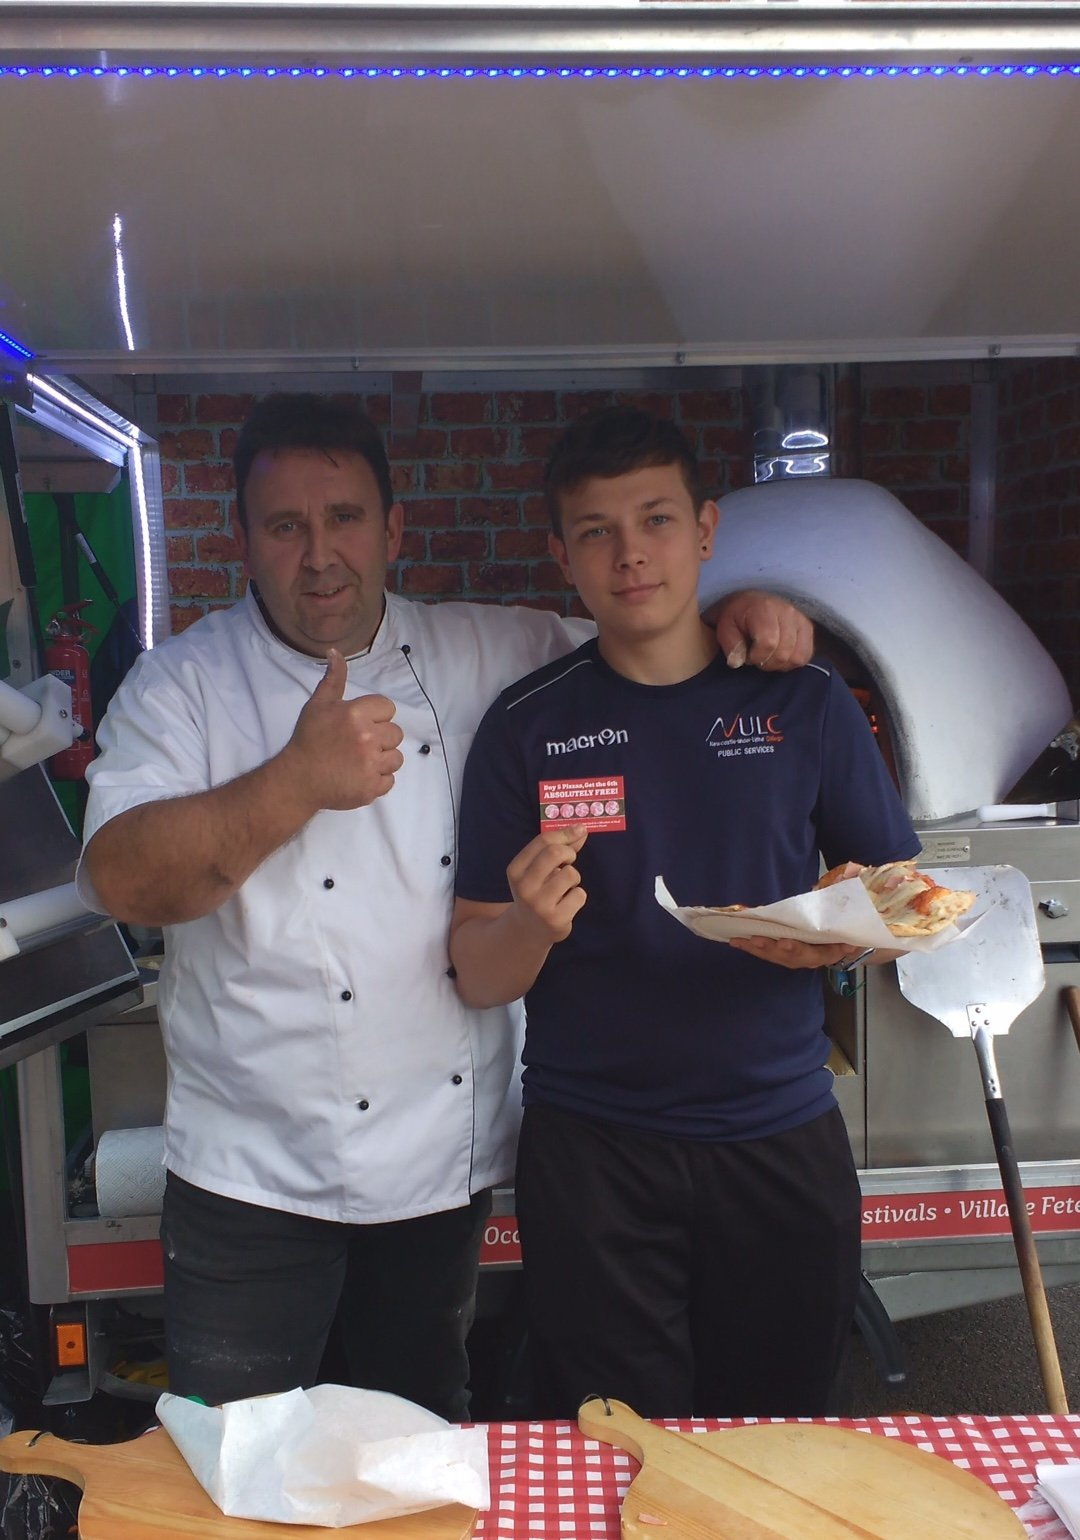 two pizzaiolo in front of a pizza oven